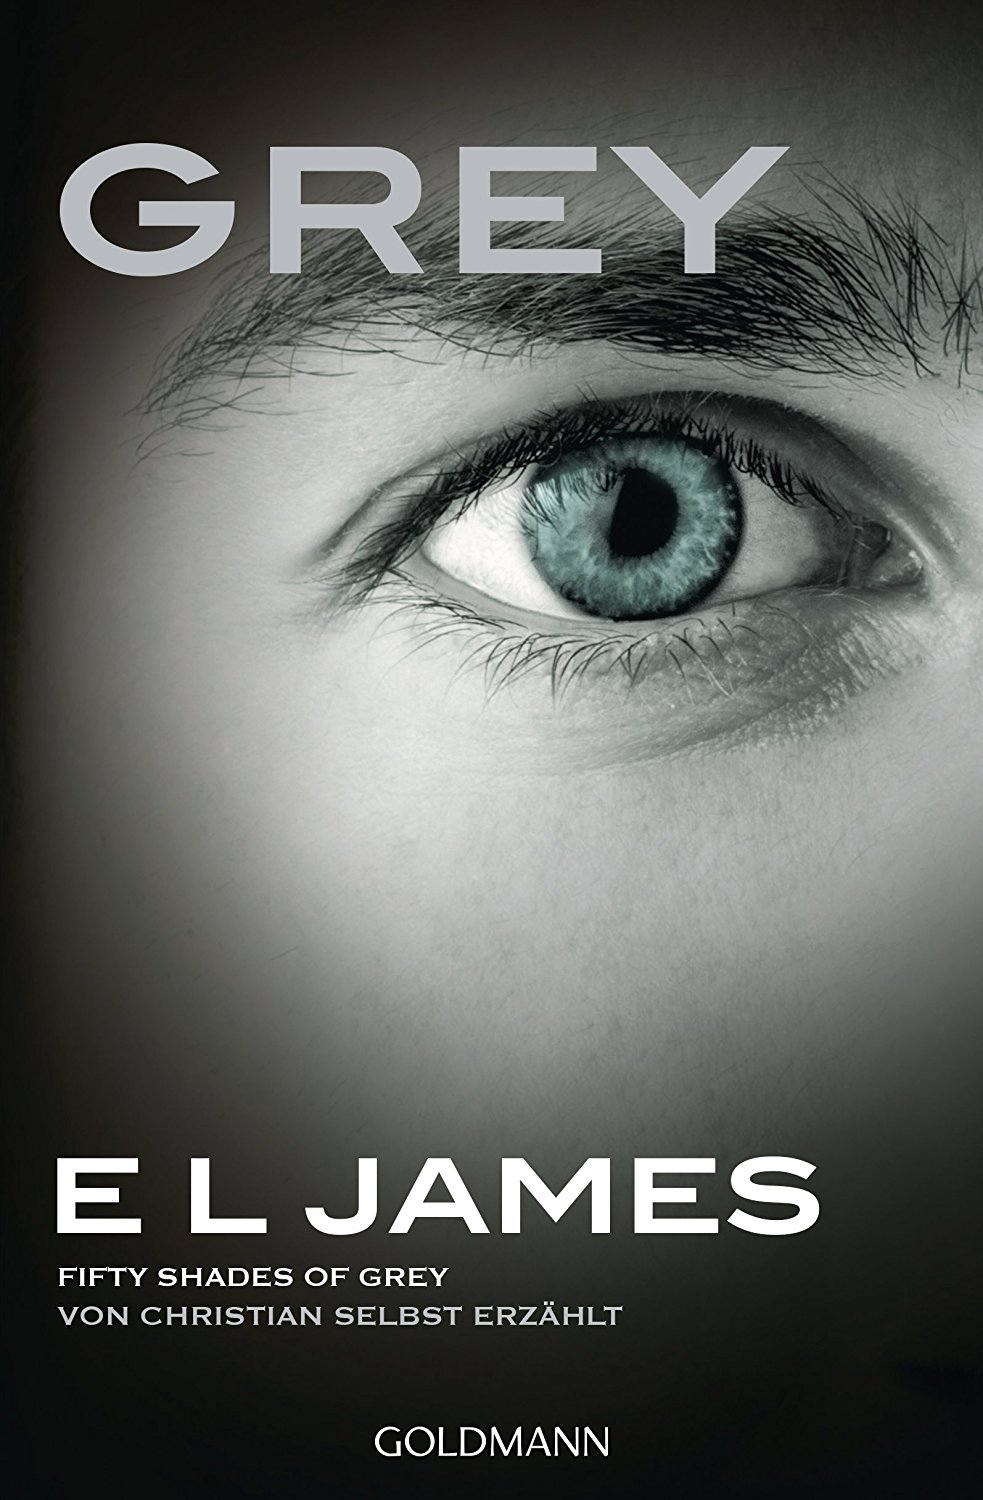 [Rezension] Grey – GREY – Fifty Shades of Grey von Christian selbst erzählt – E.L. James